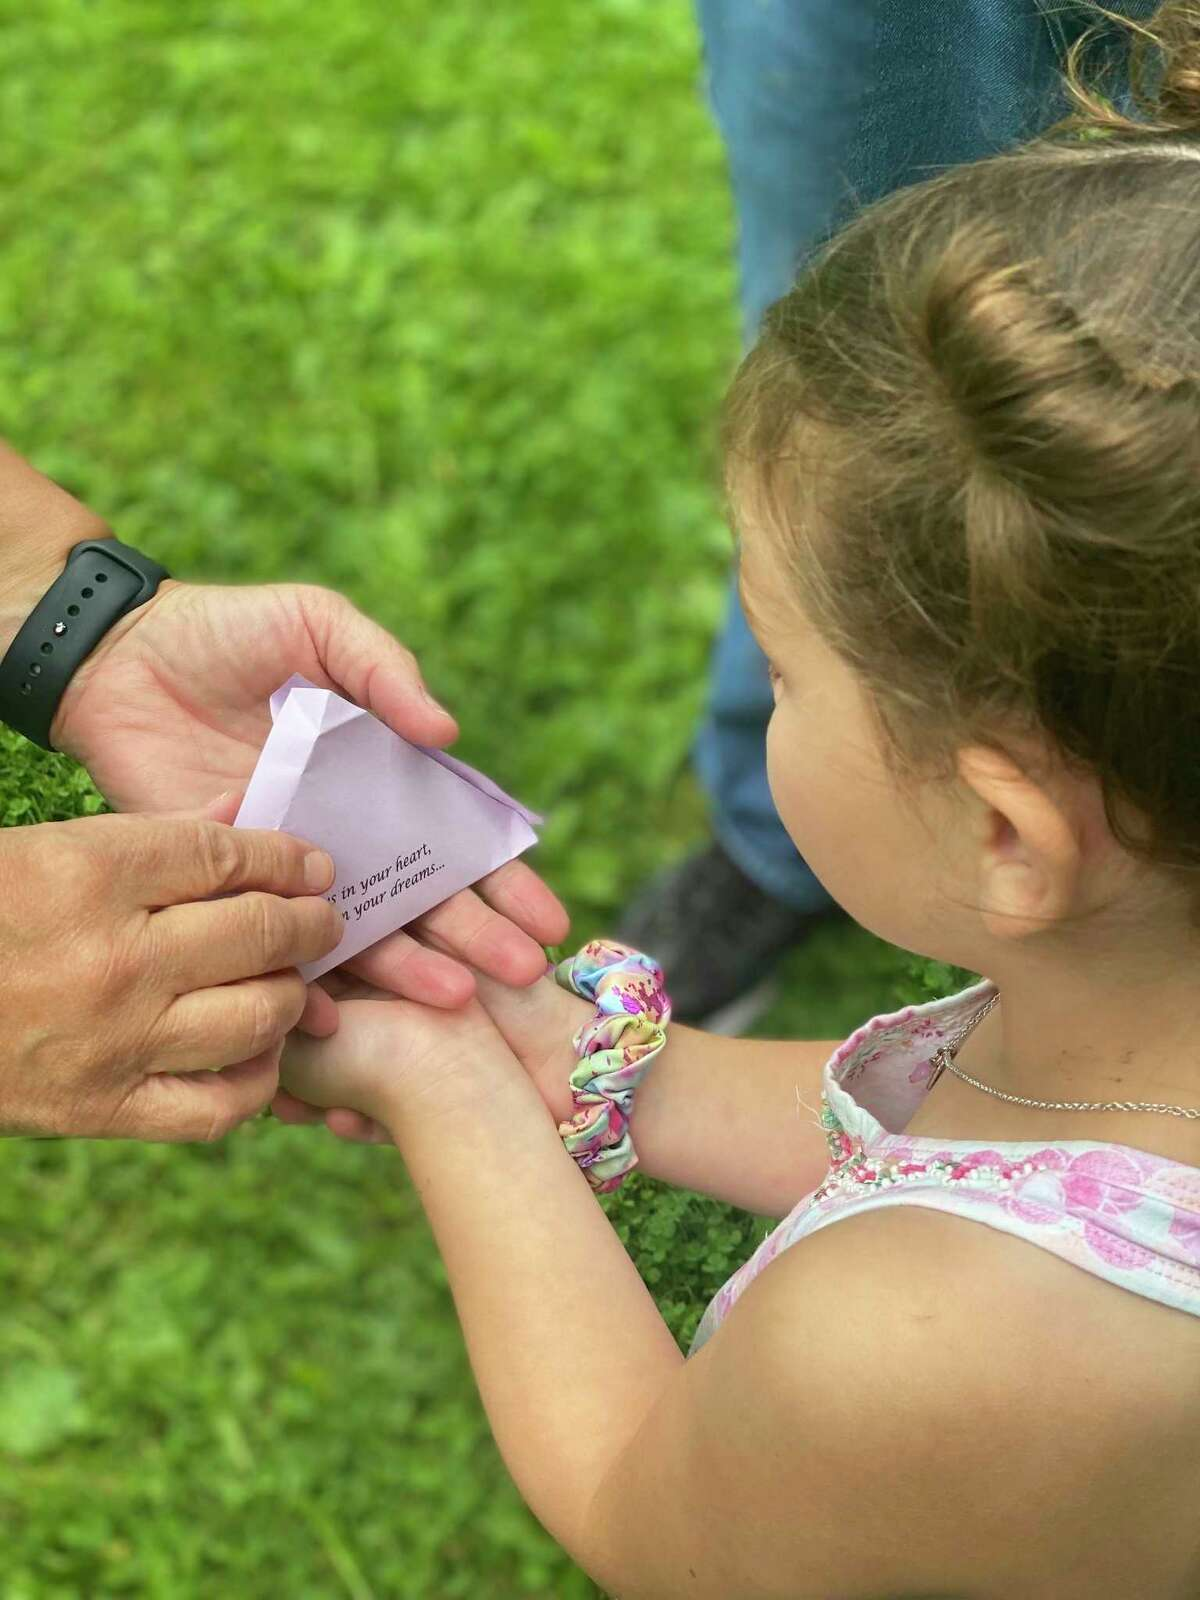 The annual Butterflies in the Park event includes a live butterfly release to commemorate and honor loved ones participants have lost. (Photo provided)